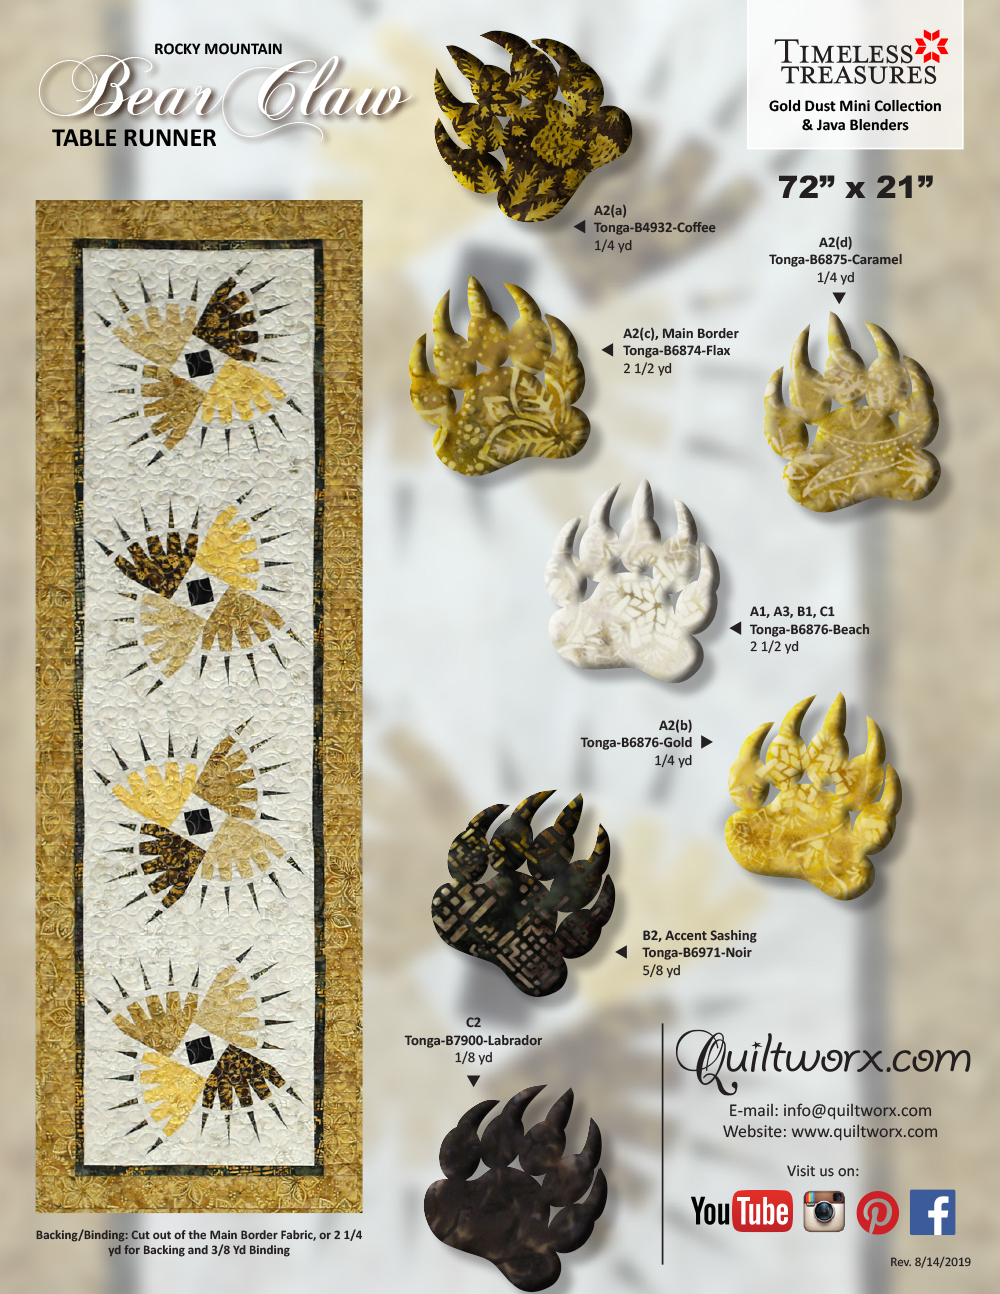 RMBC-Table-Runner-Gold-Dust-1pg-KS